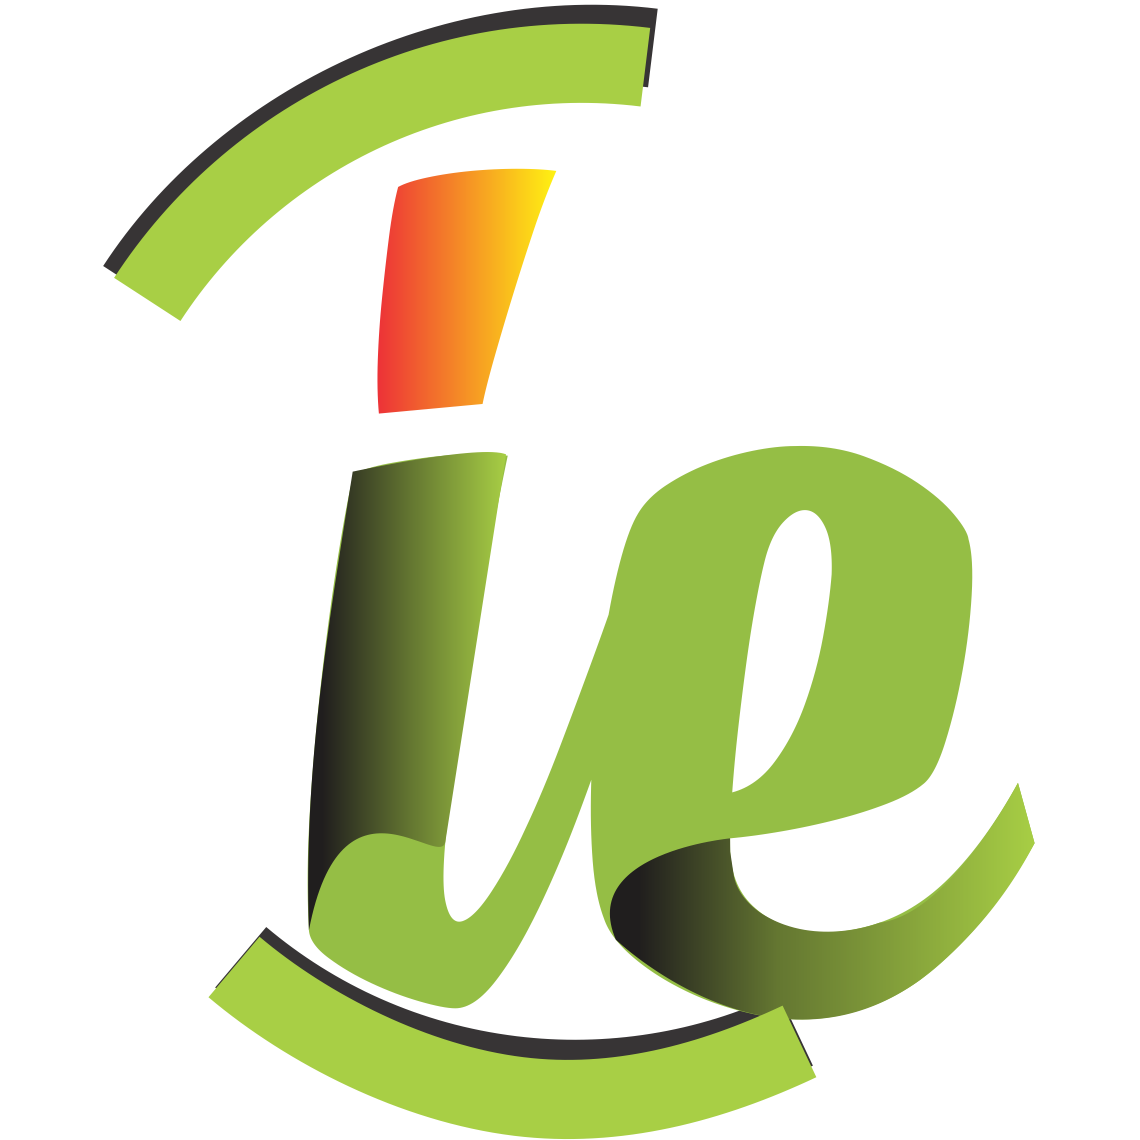 IeDigitals LTD Logo